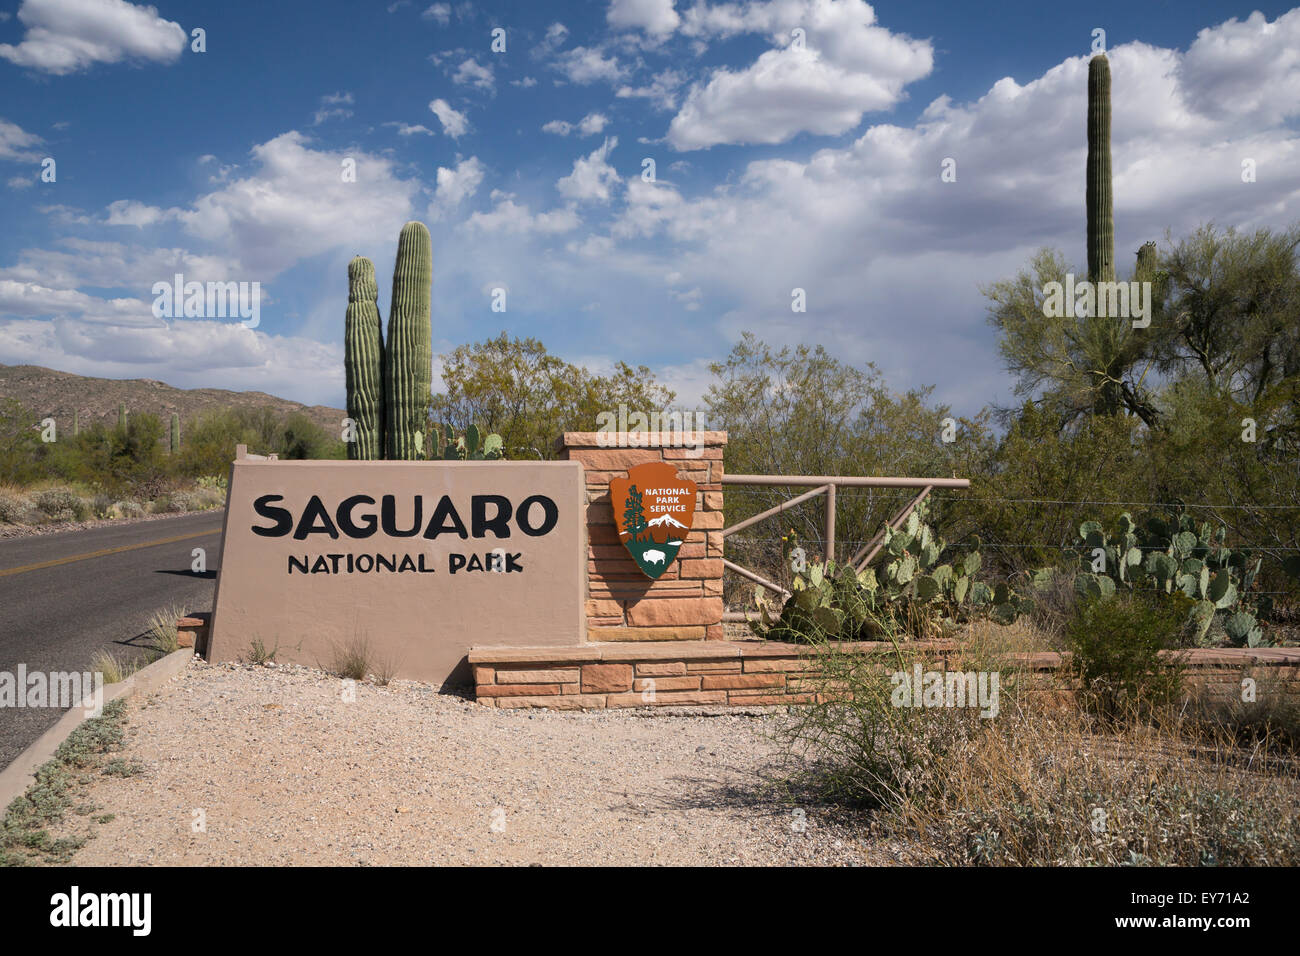 The Saguaro National Park sign at the entrance to the east section of the park near Tucson, Arizona, USA. - Stock Image